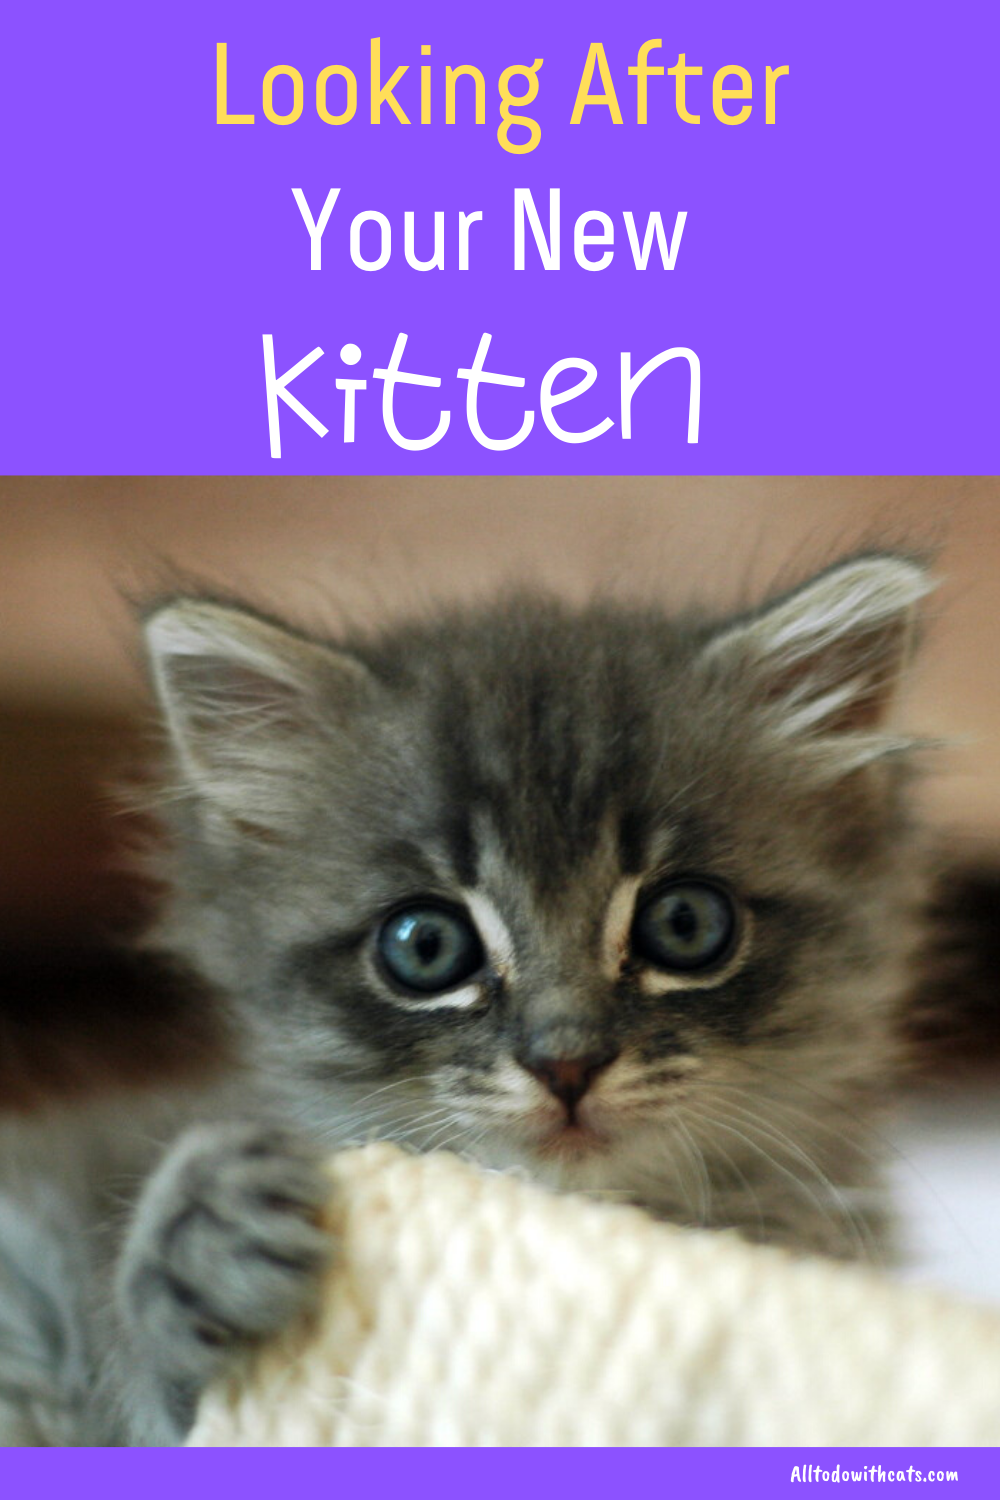 How To Care For A Kitten From Newborn Up To The First Few Months In 2020 Kitten Care Getting A Kitten Kitten Grooming